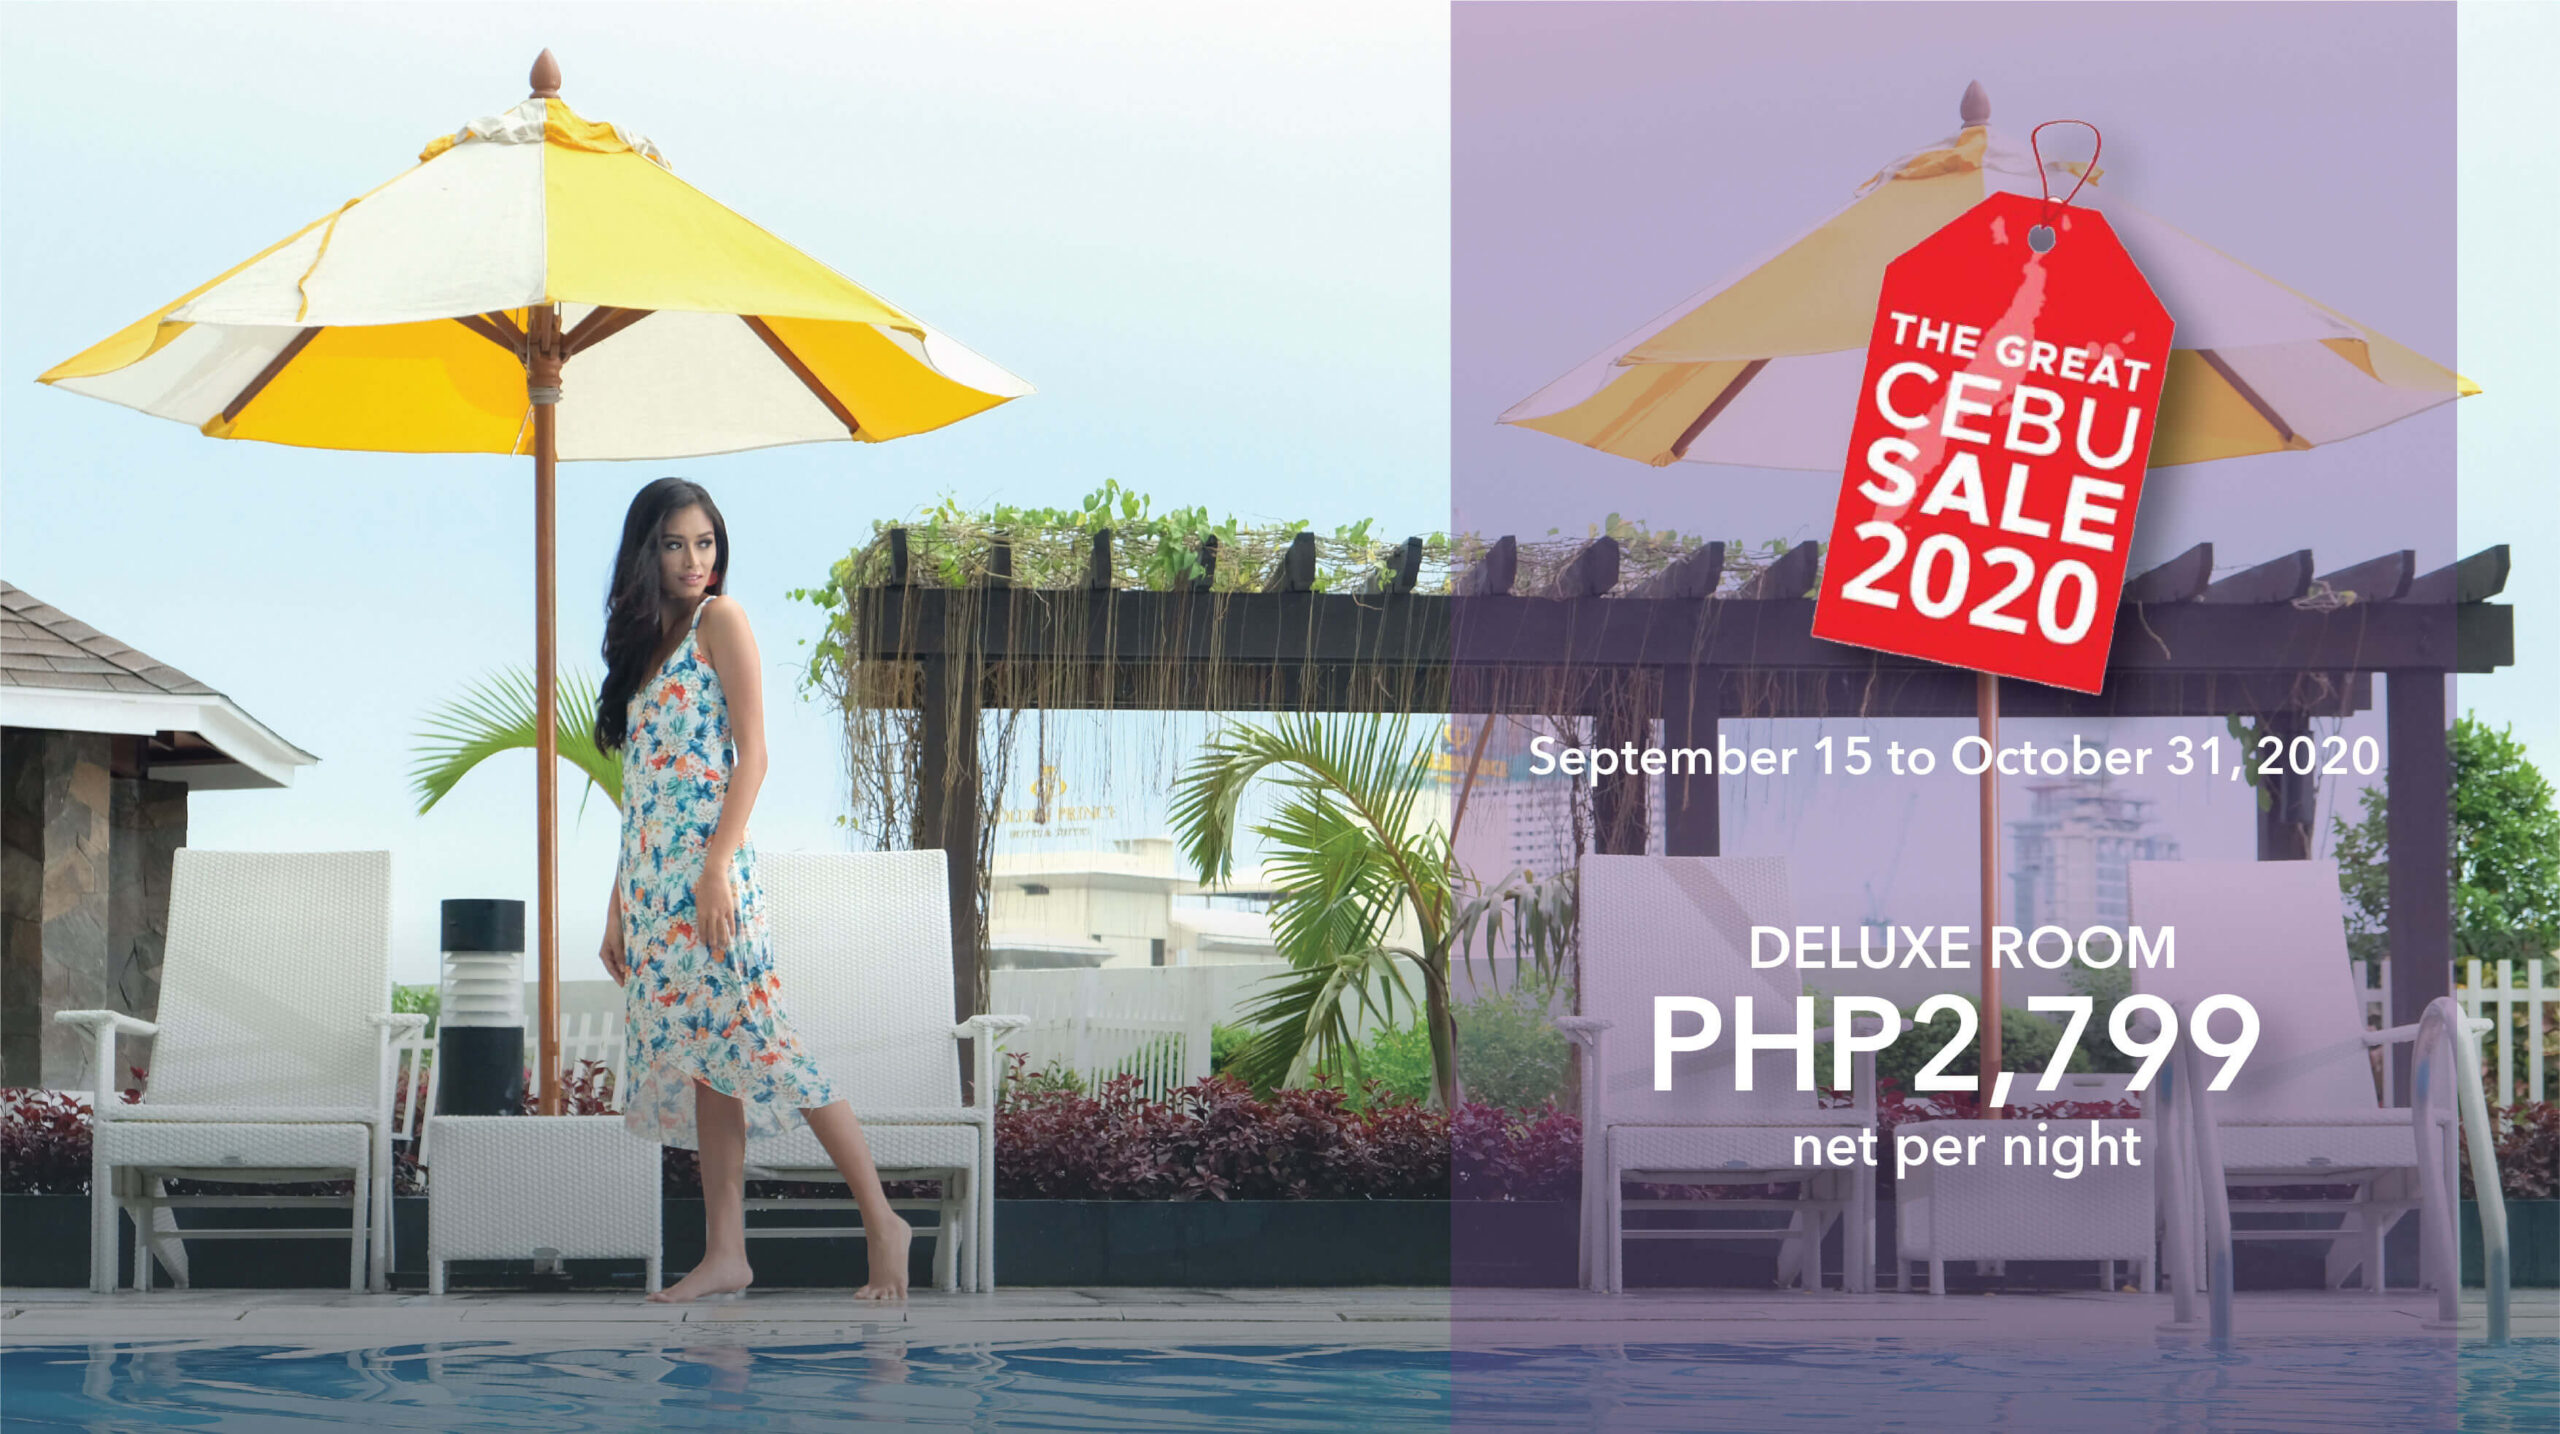 Quest Hotel offers lowest rate for your next stay if you book during The Great Cebu Sale